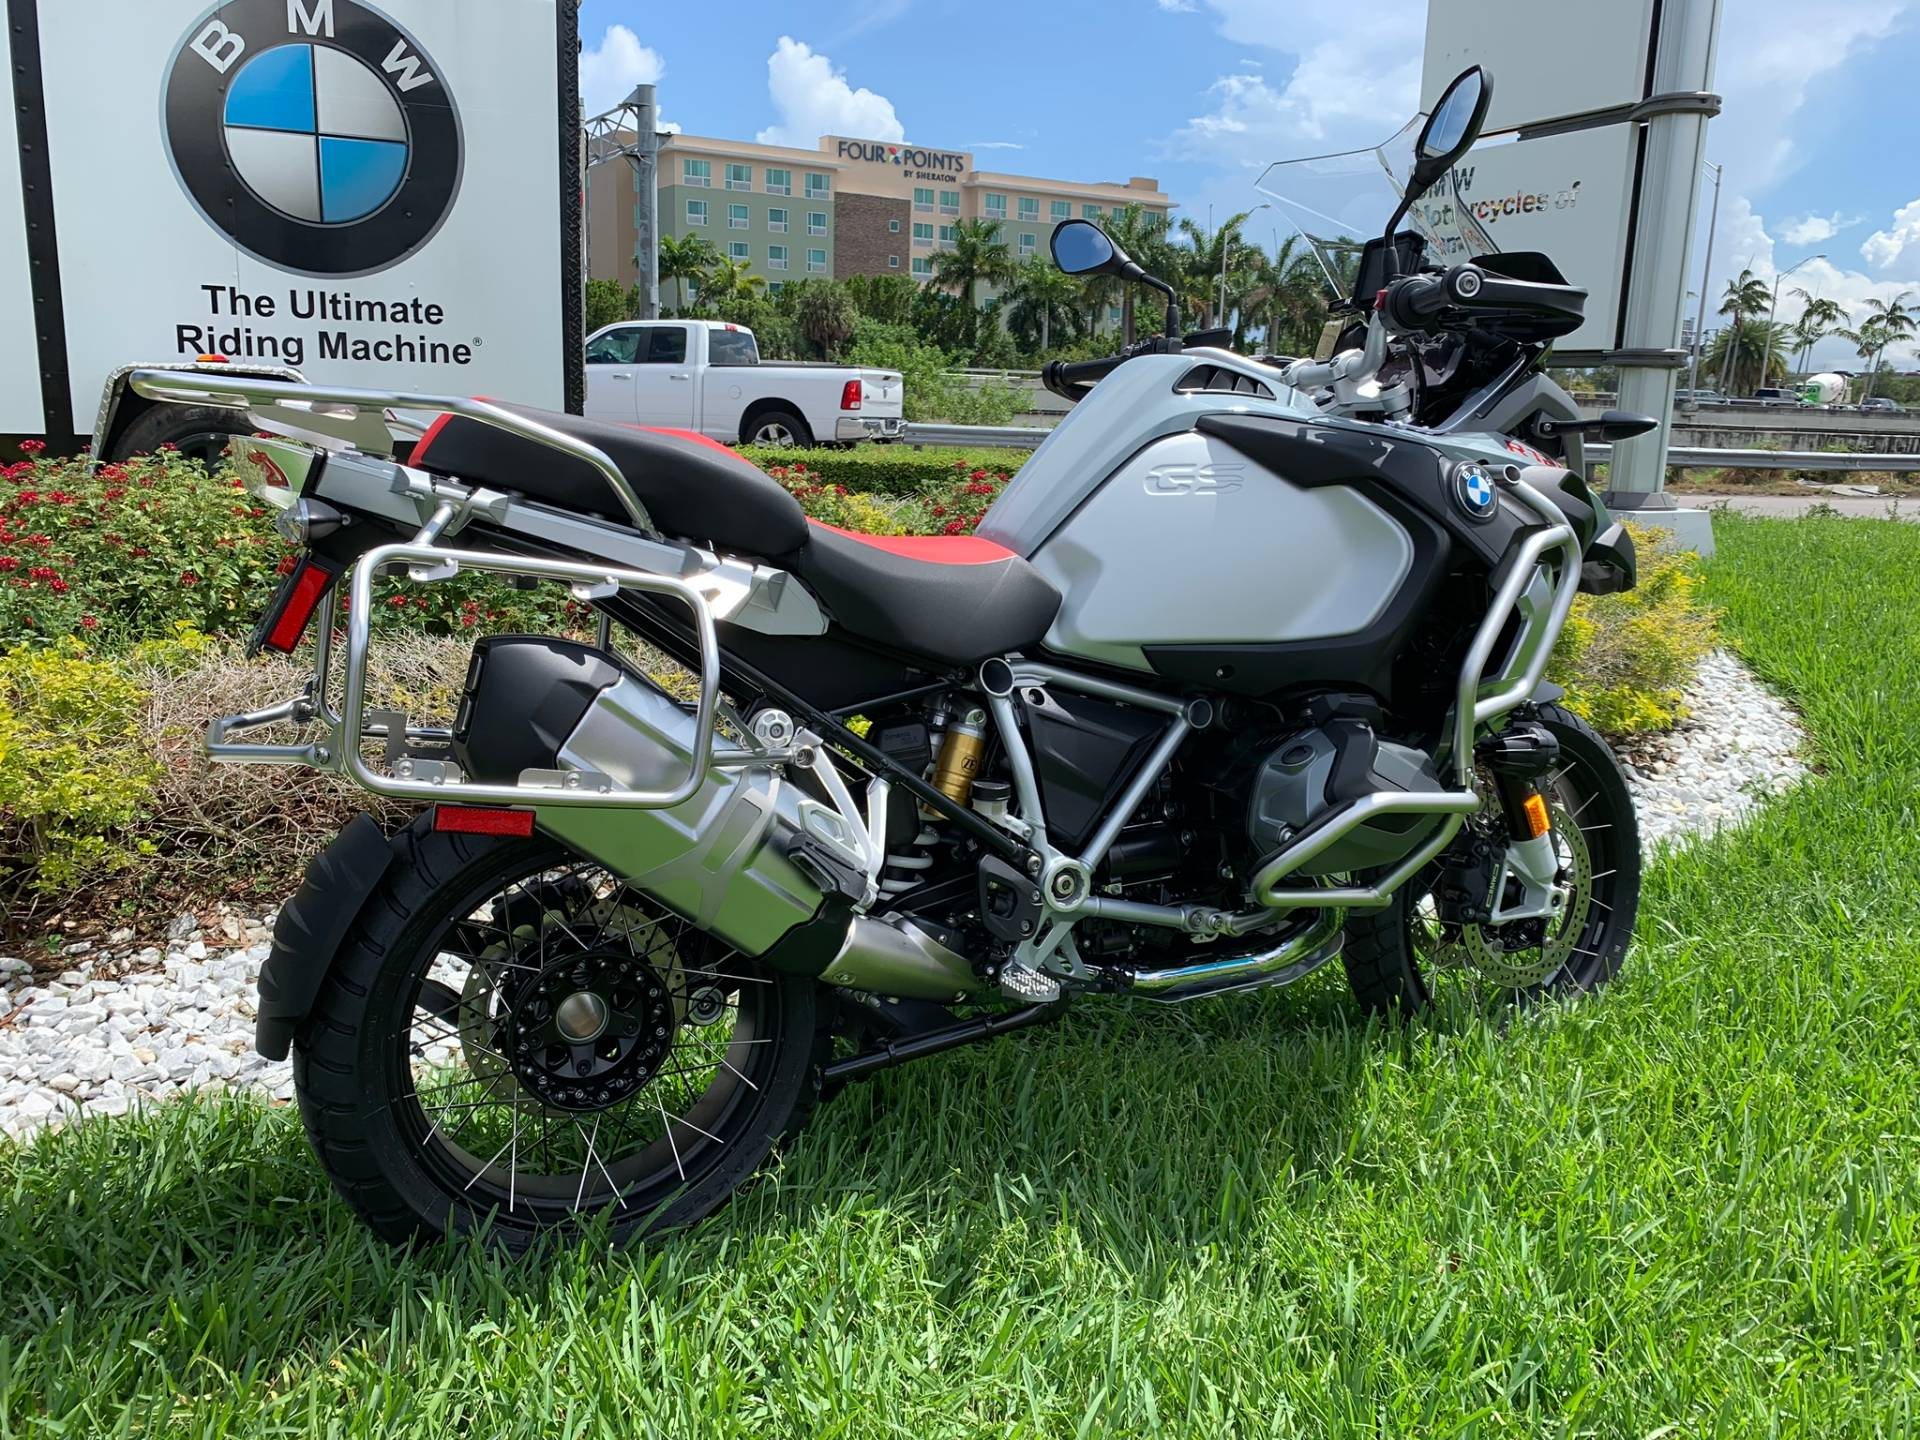 New 2019 BMW R 1250 GSA for sale, New BMW for sale R 1250GSA, New BMW Motorcycle R1250GSA for sale, new BMW 1250GS Adventure, R1250GS Adventure, Adventure. BMW Motorcycles of Miami, Motorcycles of Miami, Motorcycles Miami, New Motorcycles, Used Motorcycles, pre-owned. #BMWMotorcyclesOfMiami #Motorcy - Photo 24